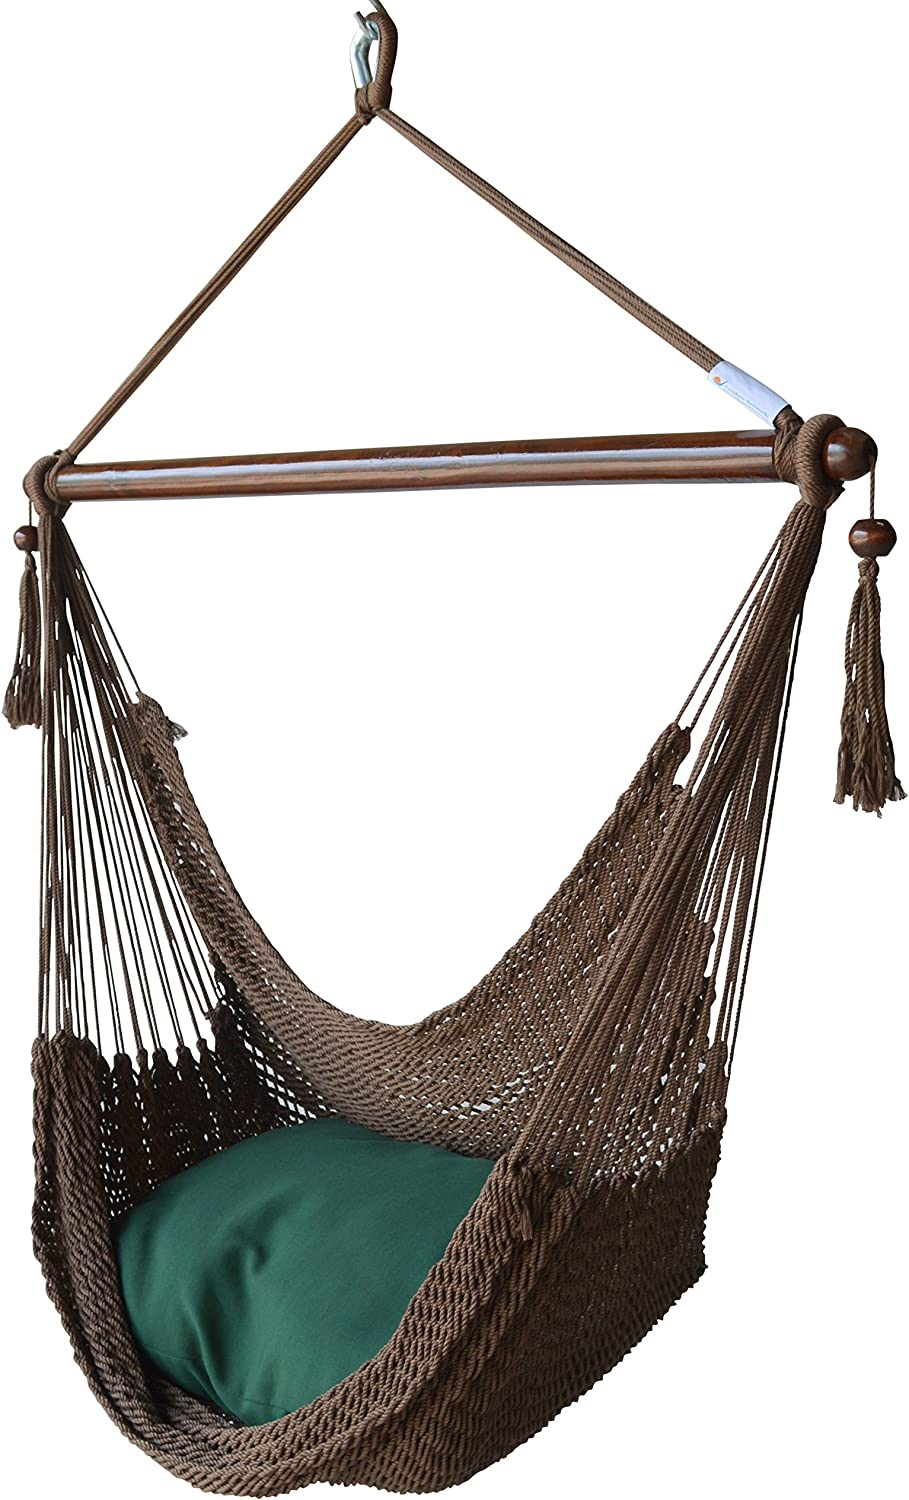 Caribbean Hammocks Hammock Chair with Footrest - 40 inch - Mocha - 200 lbs Weight Capacity